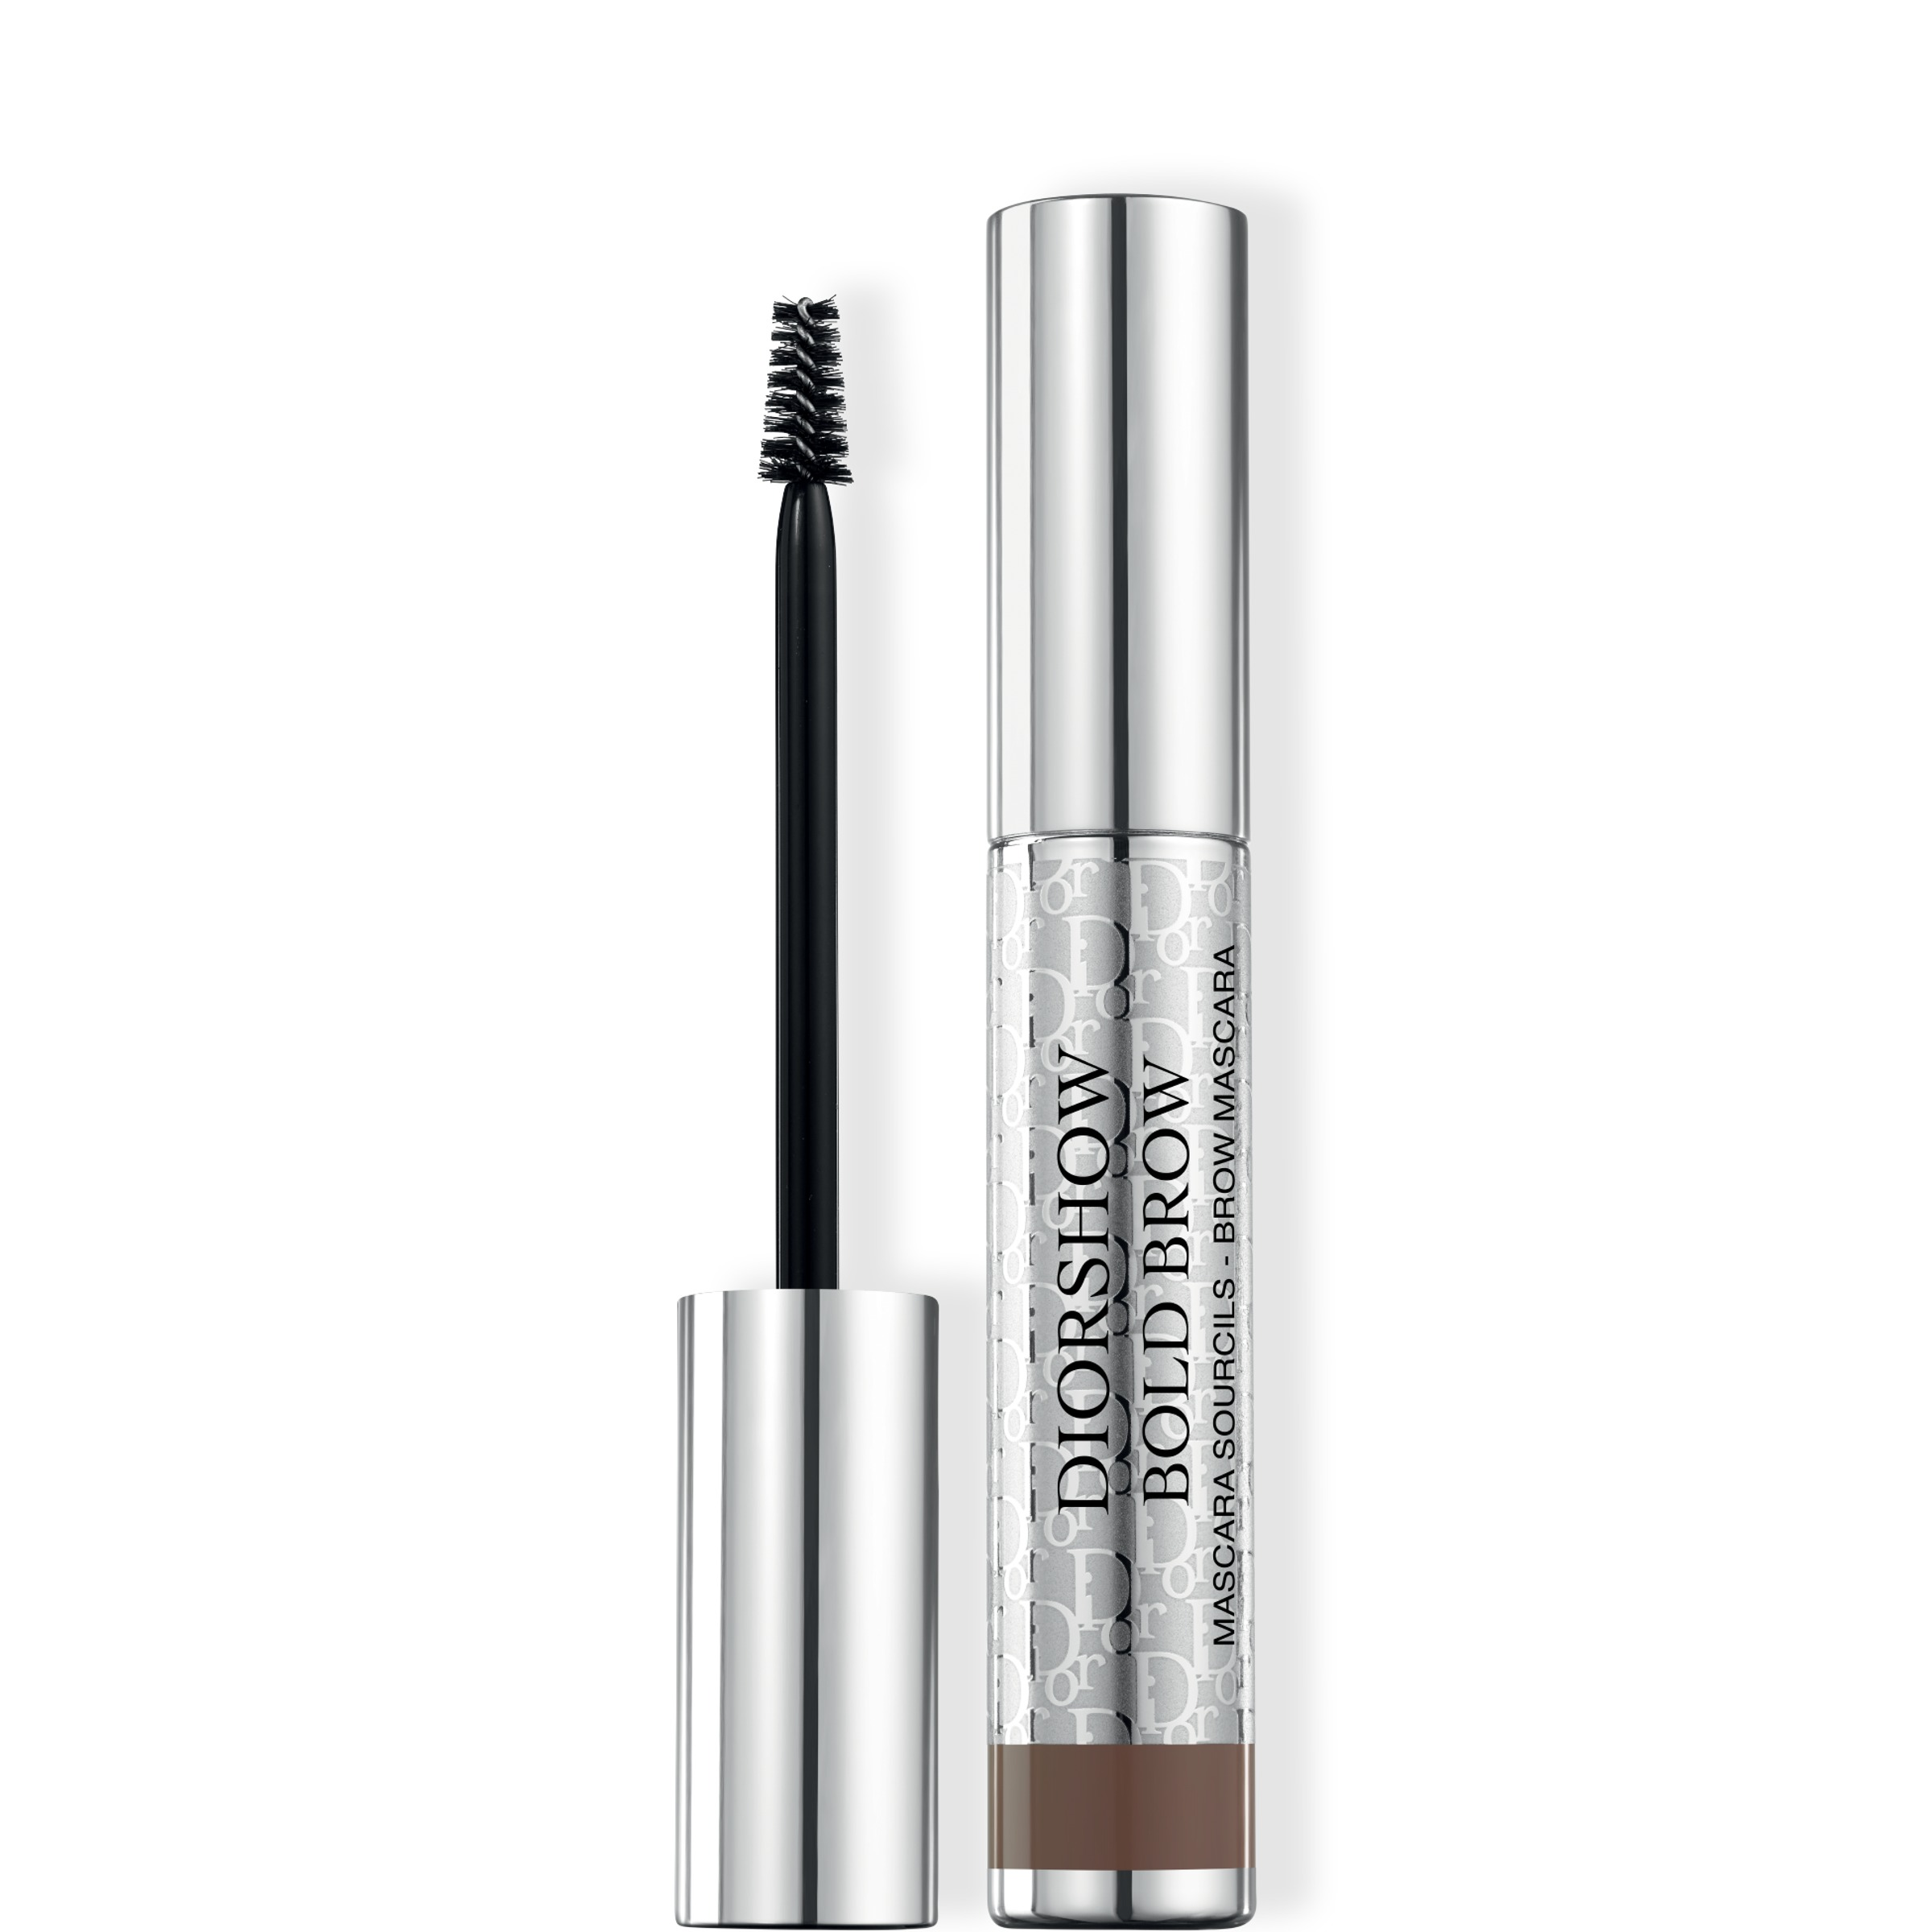 Diorshow Brow Mascara 002 Dark